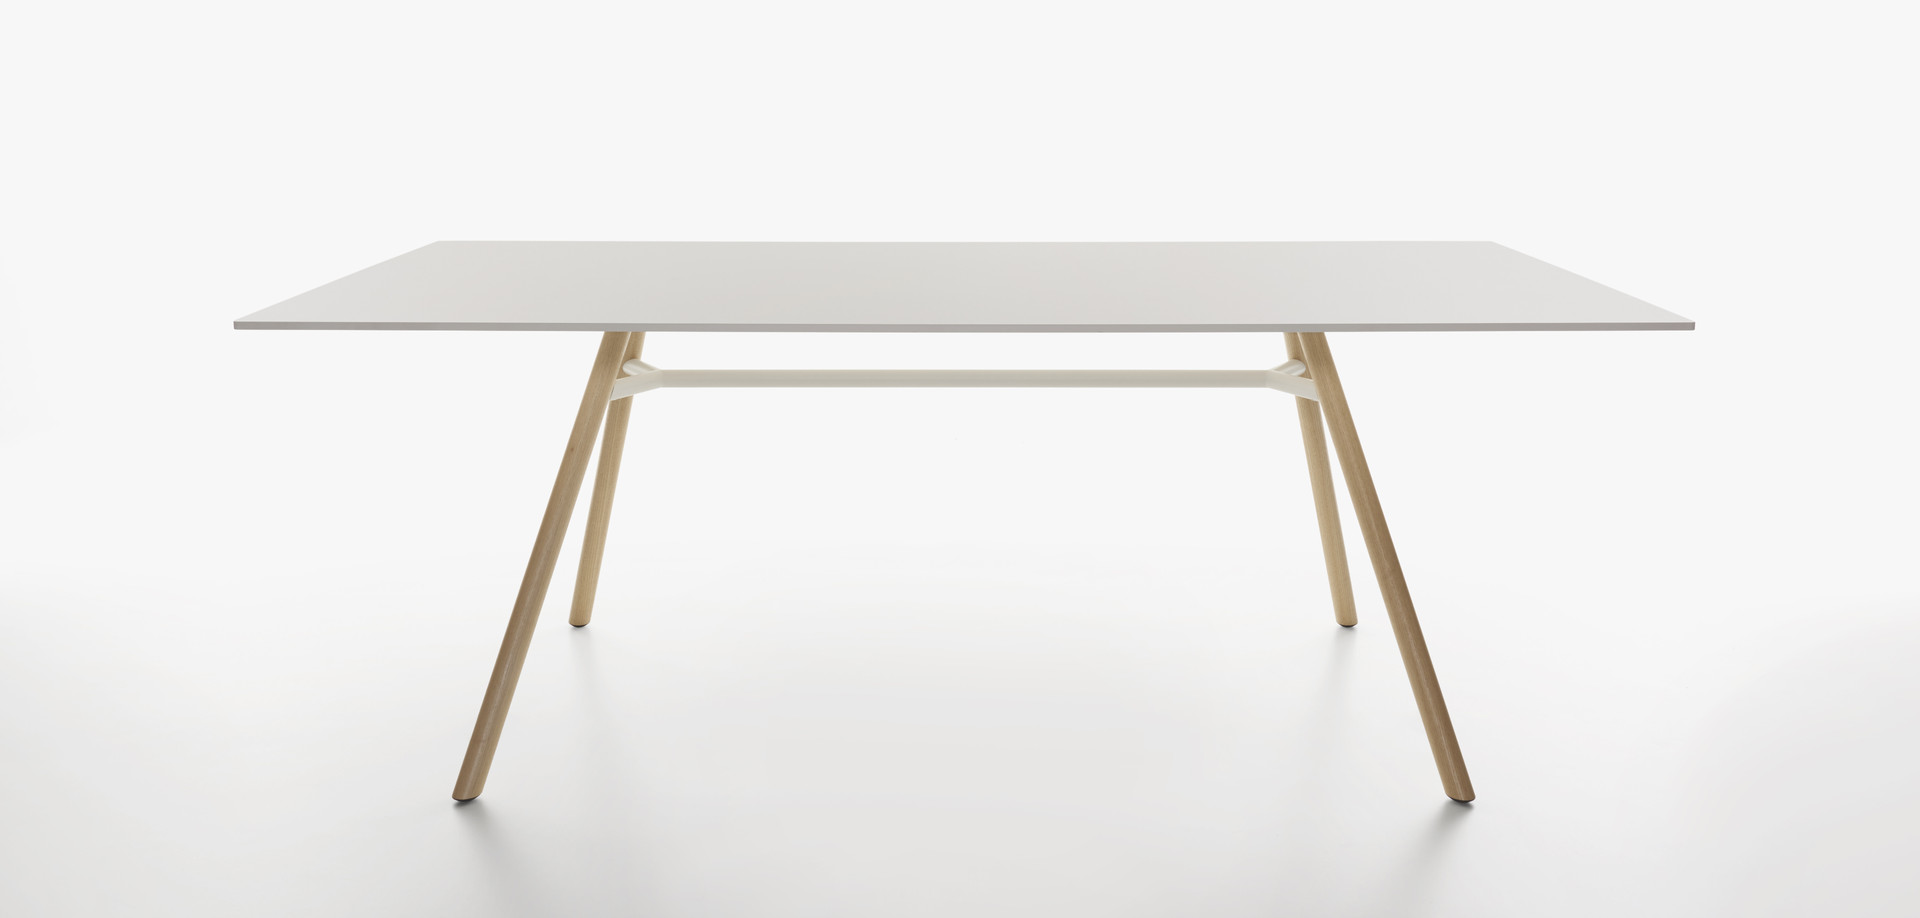 Plank - MART table, rectangular table top, natural ash legs, white HPL top